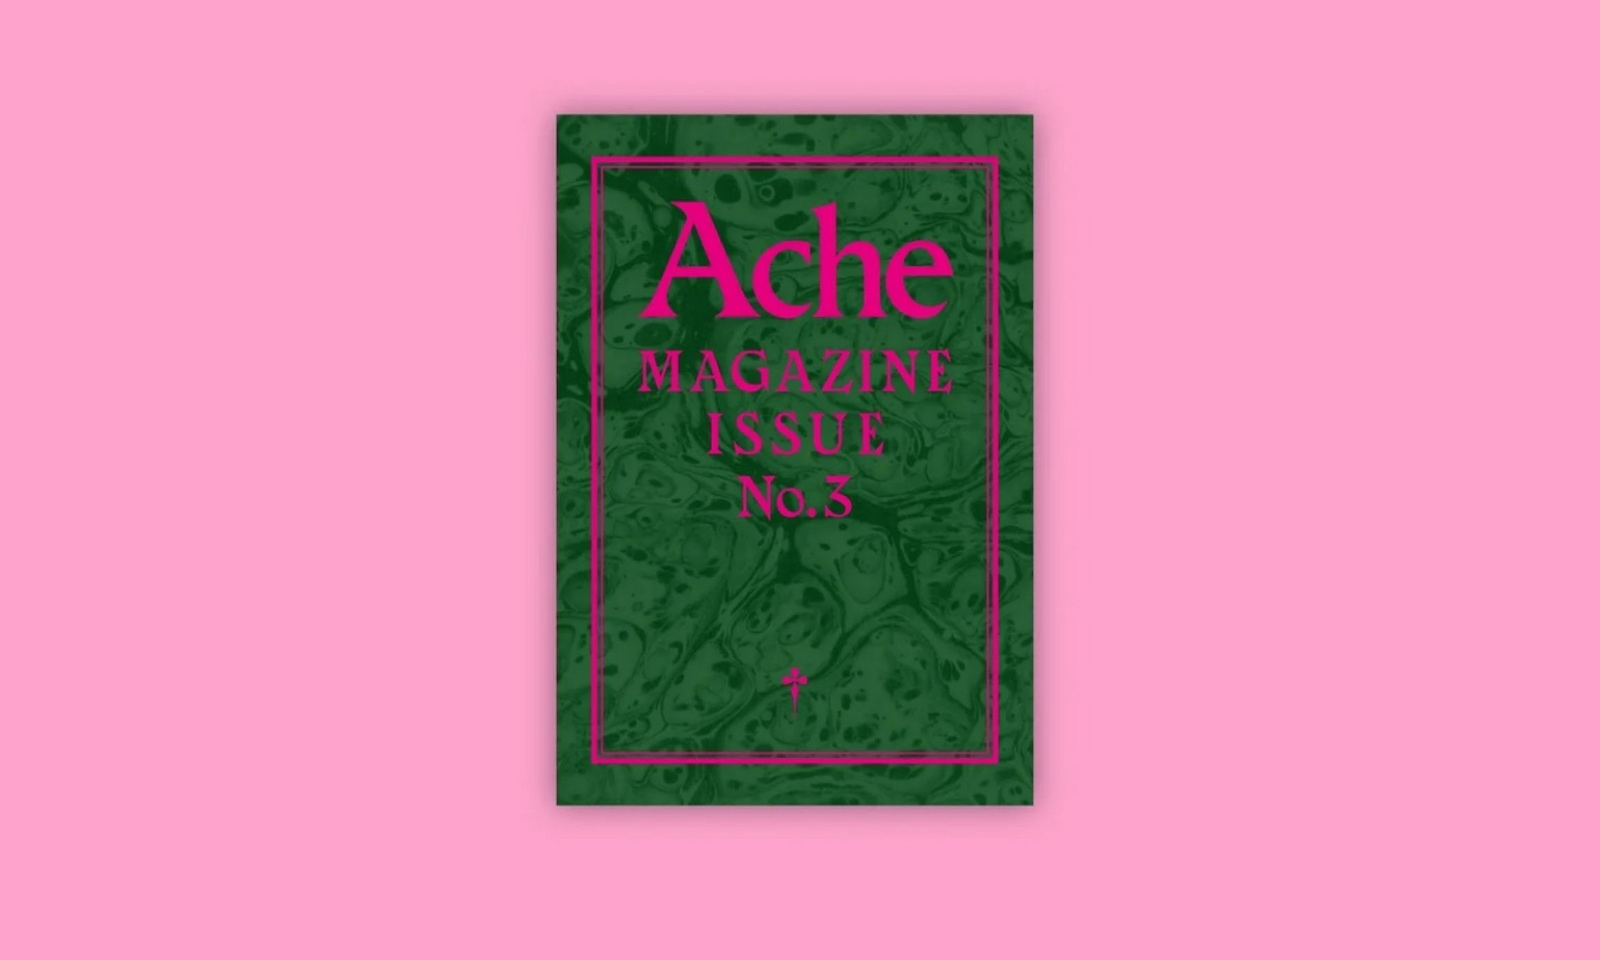 Ache Magazine: a Publication by and for Women, Trans People and Non-binary People